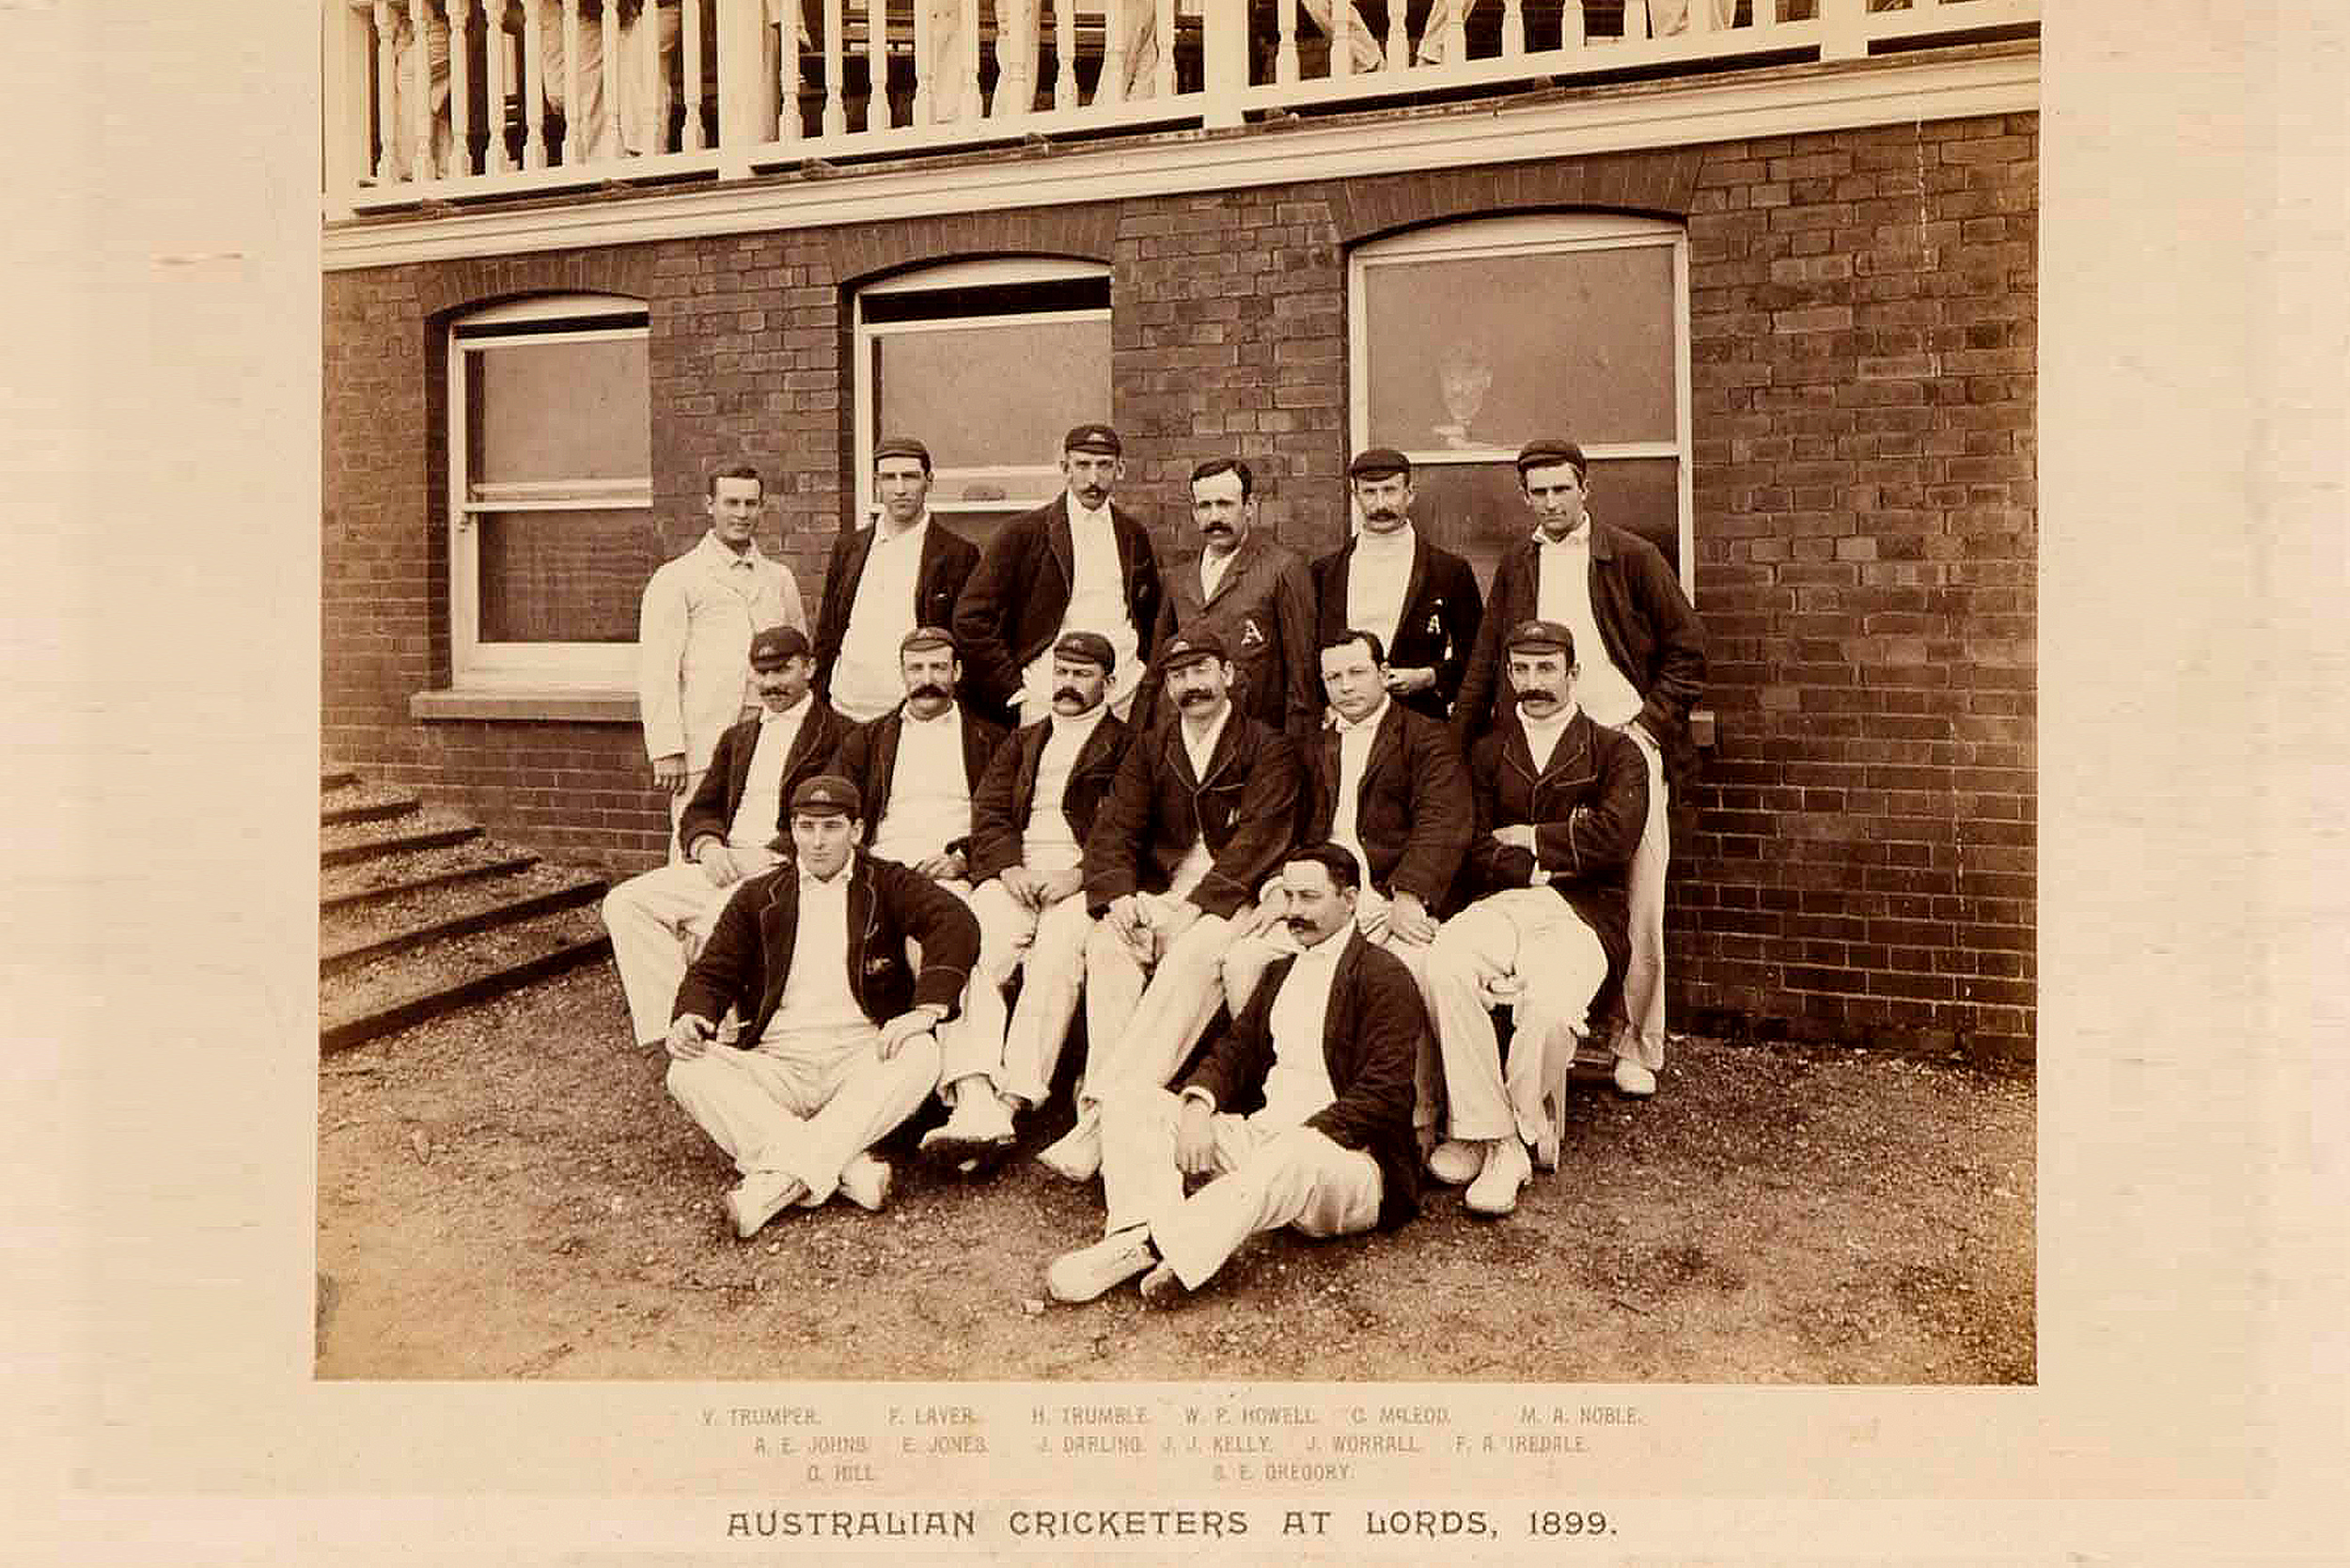 Historically green and gold were first used by the Australian cricket team that toured England in 1899. The uniforms consisted of a green cap, known today as the 'baggy green' and green blazers detailed with a gold coat of arms.